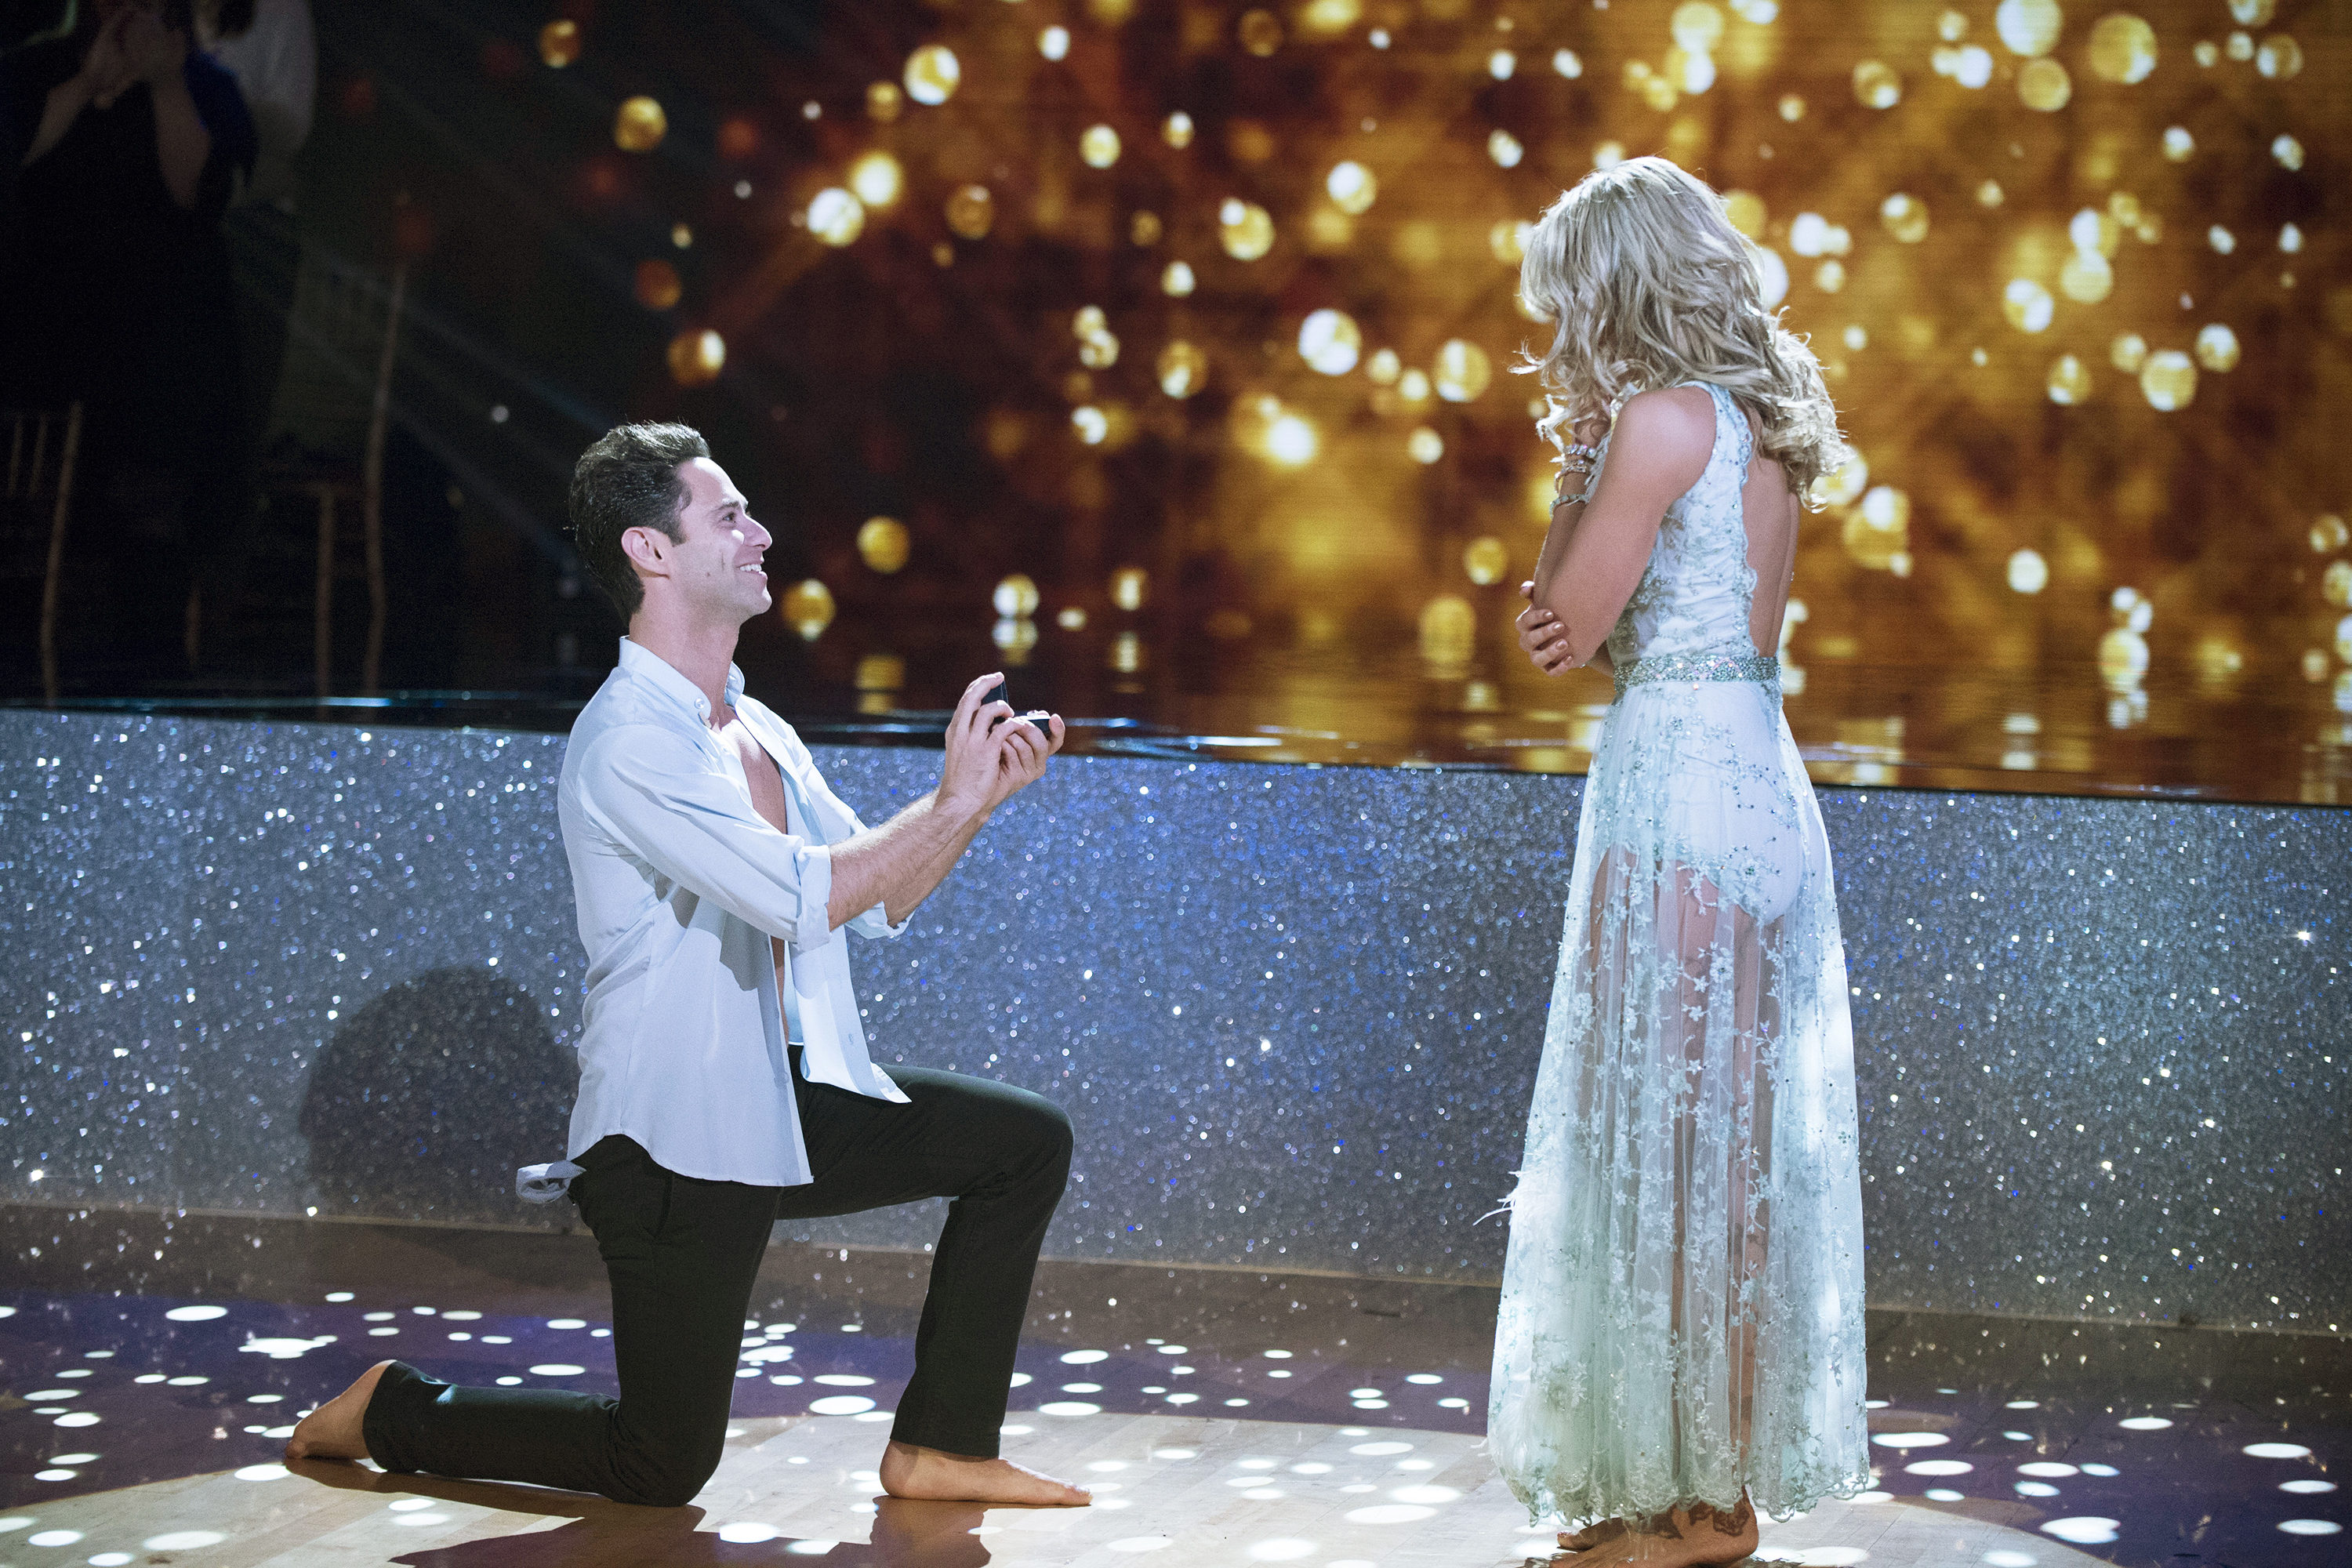 DWTS Pros Emma Slater and Sasha Farber Are Engaged! Watch